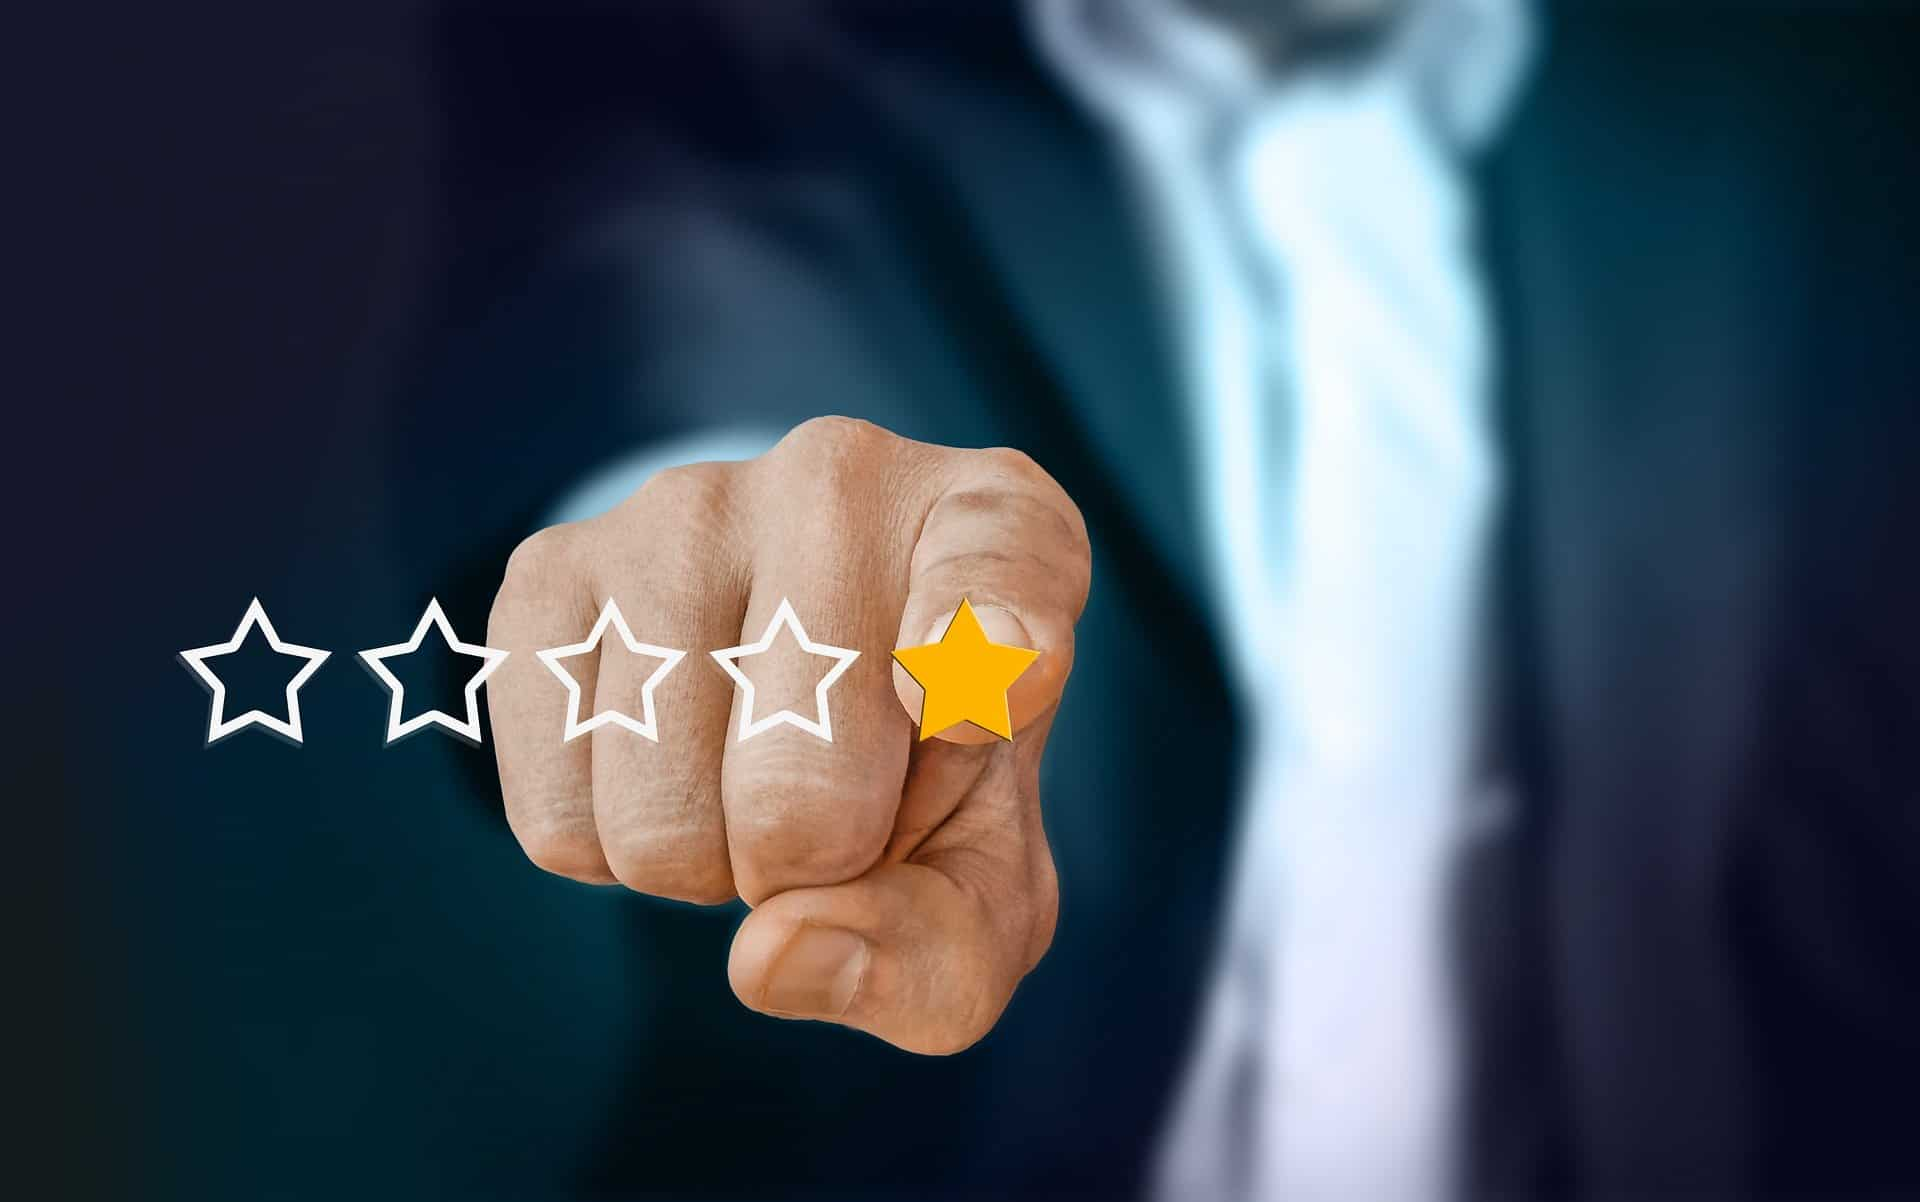 Man pointing at review stars